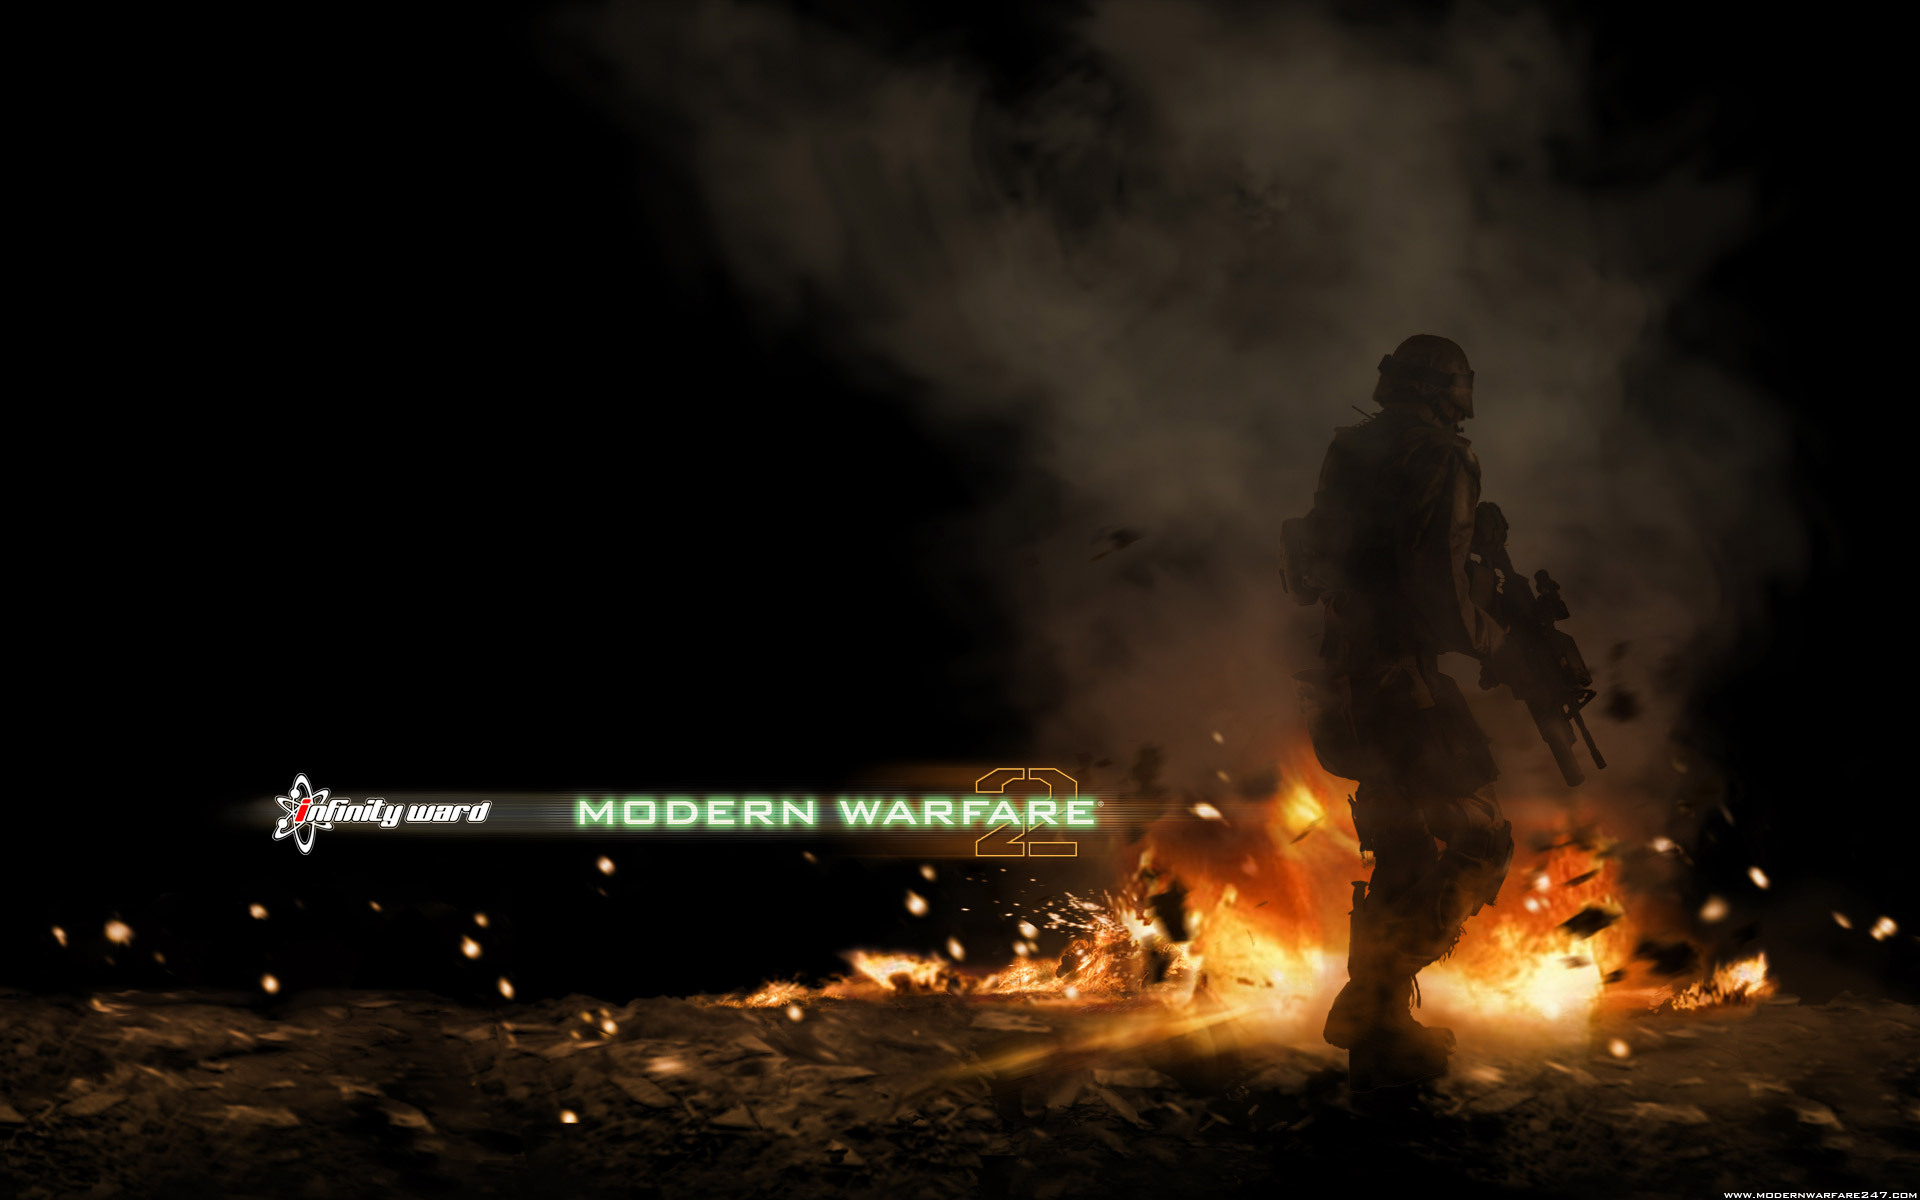 modern warfare 2 images mw2 hd wallpaper and background photos (9894649)